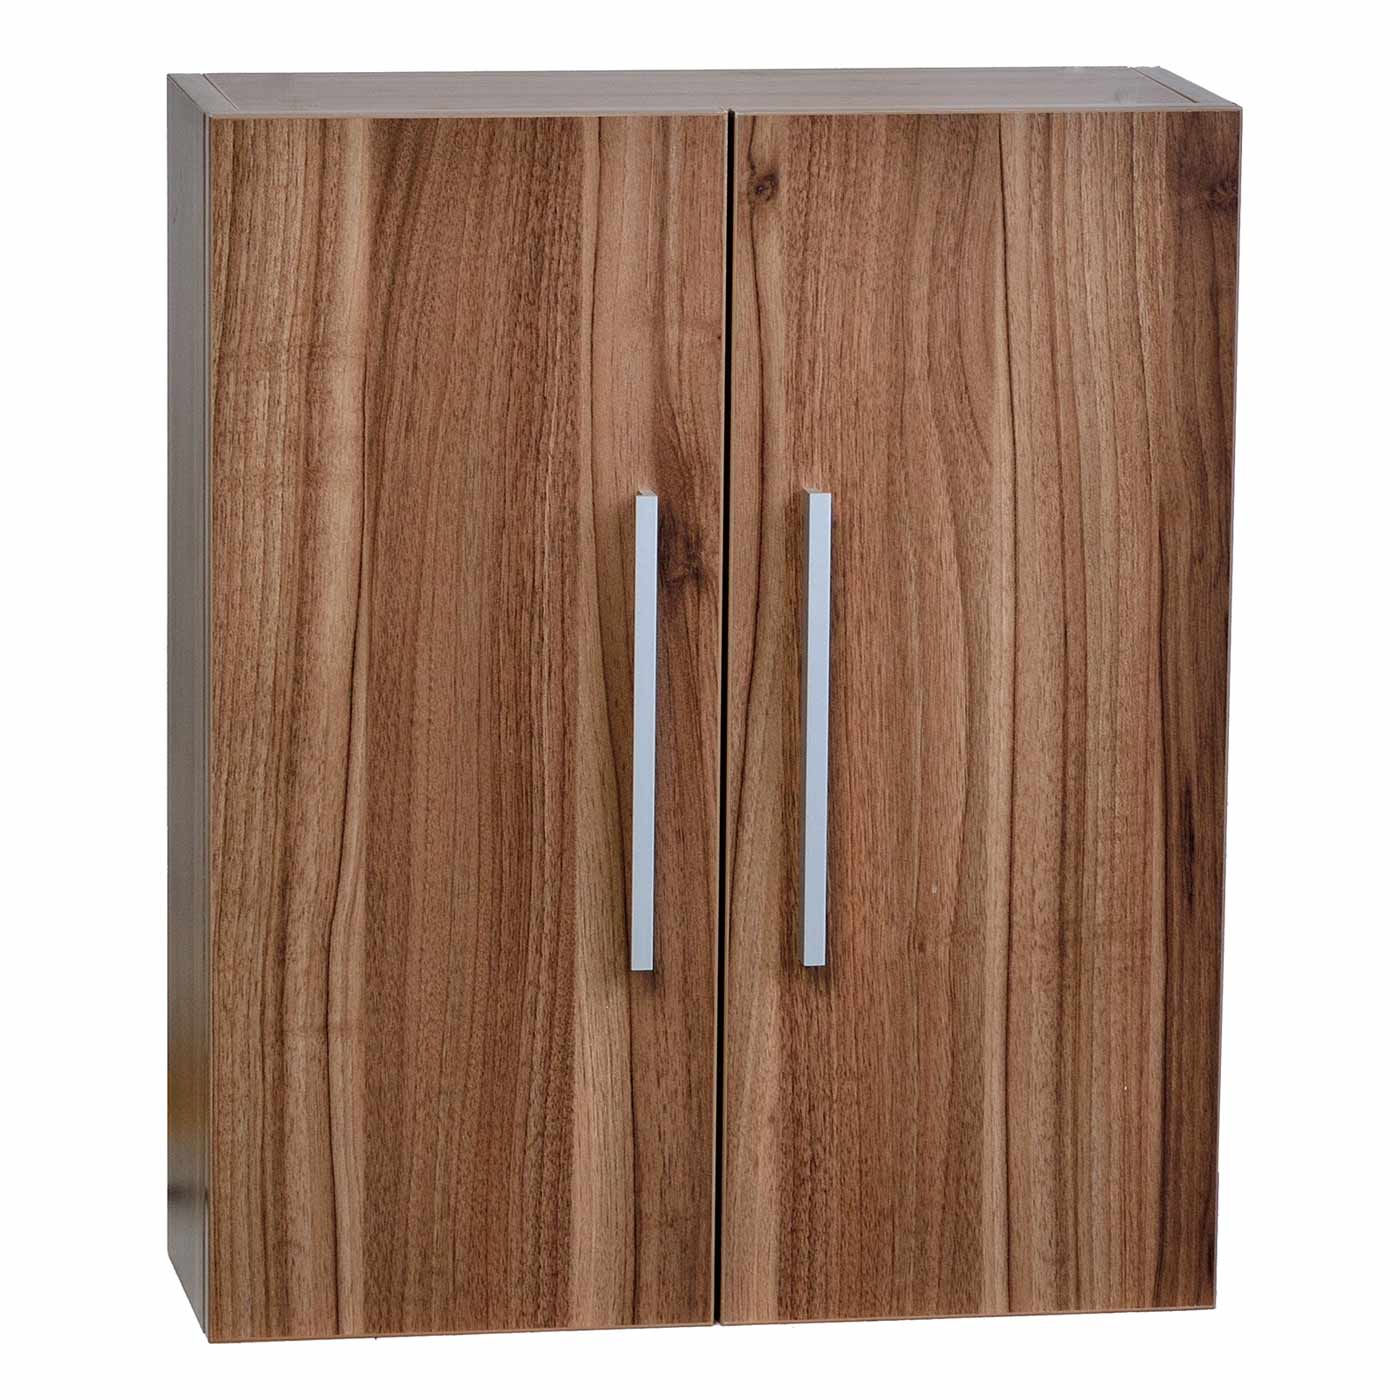 Buy Over-the-toilet Wall Cabinet Walnut 20.5 in. W x 24.4 in. H TN ...